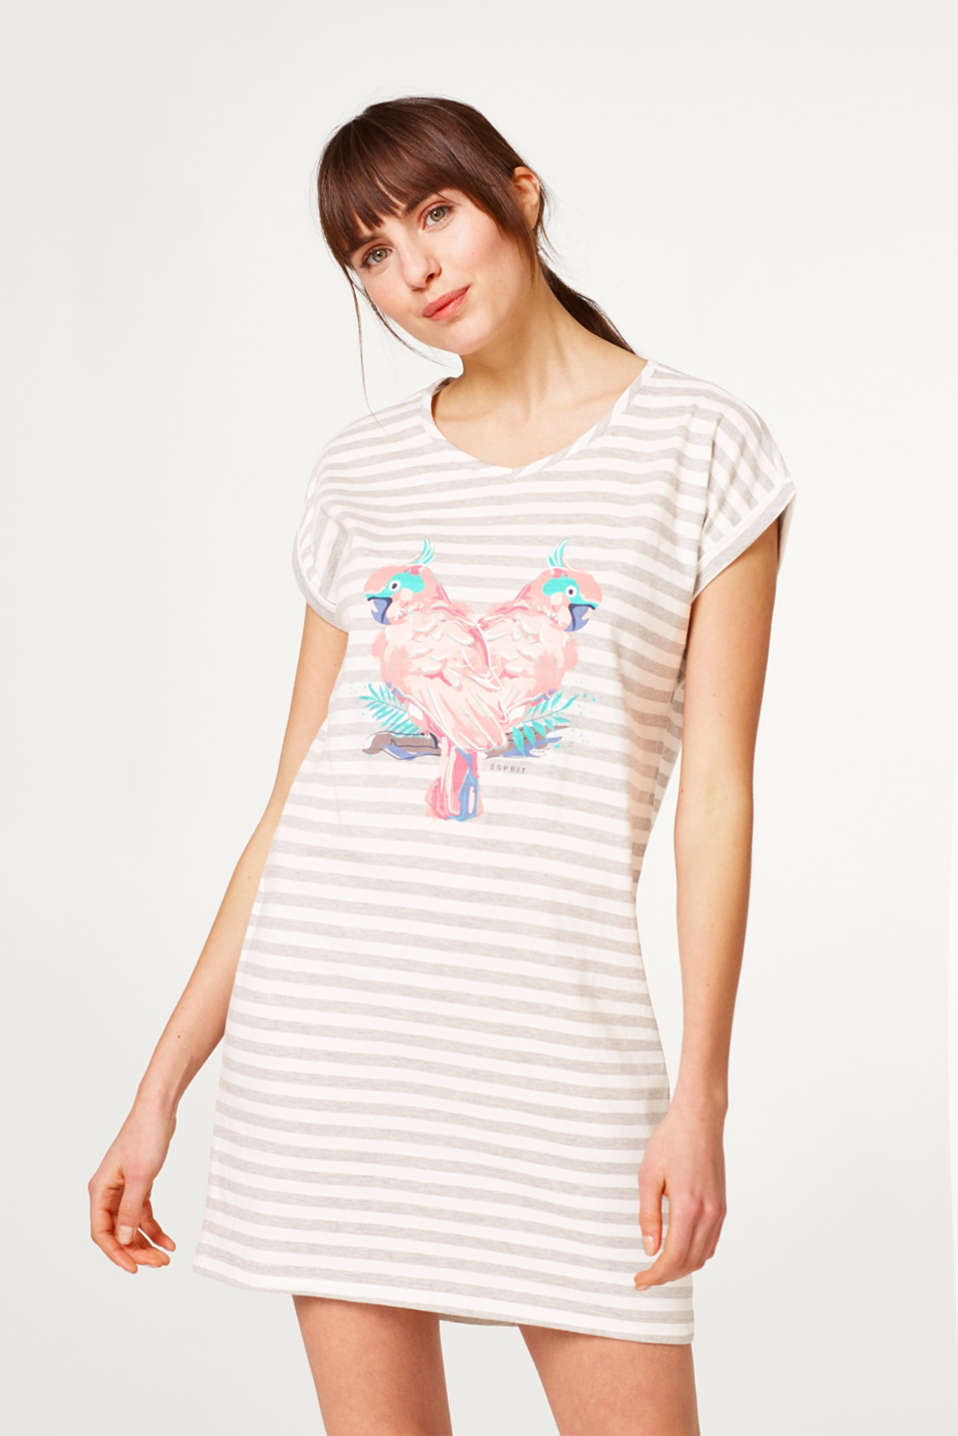 Jersey nightshirt with stripes and a print